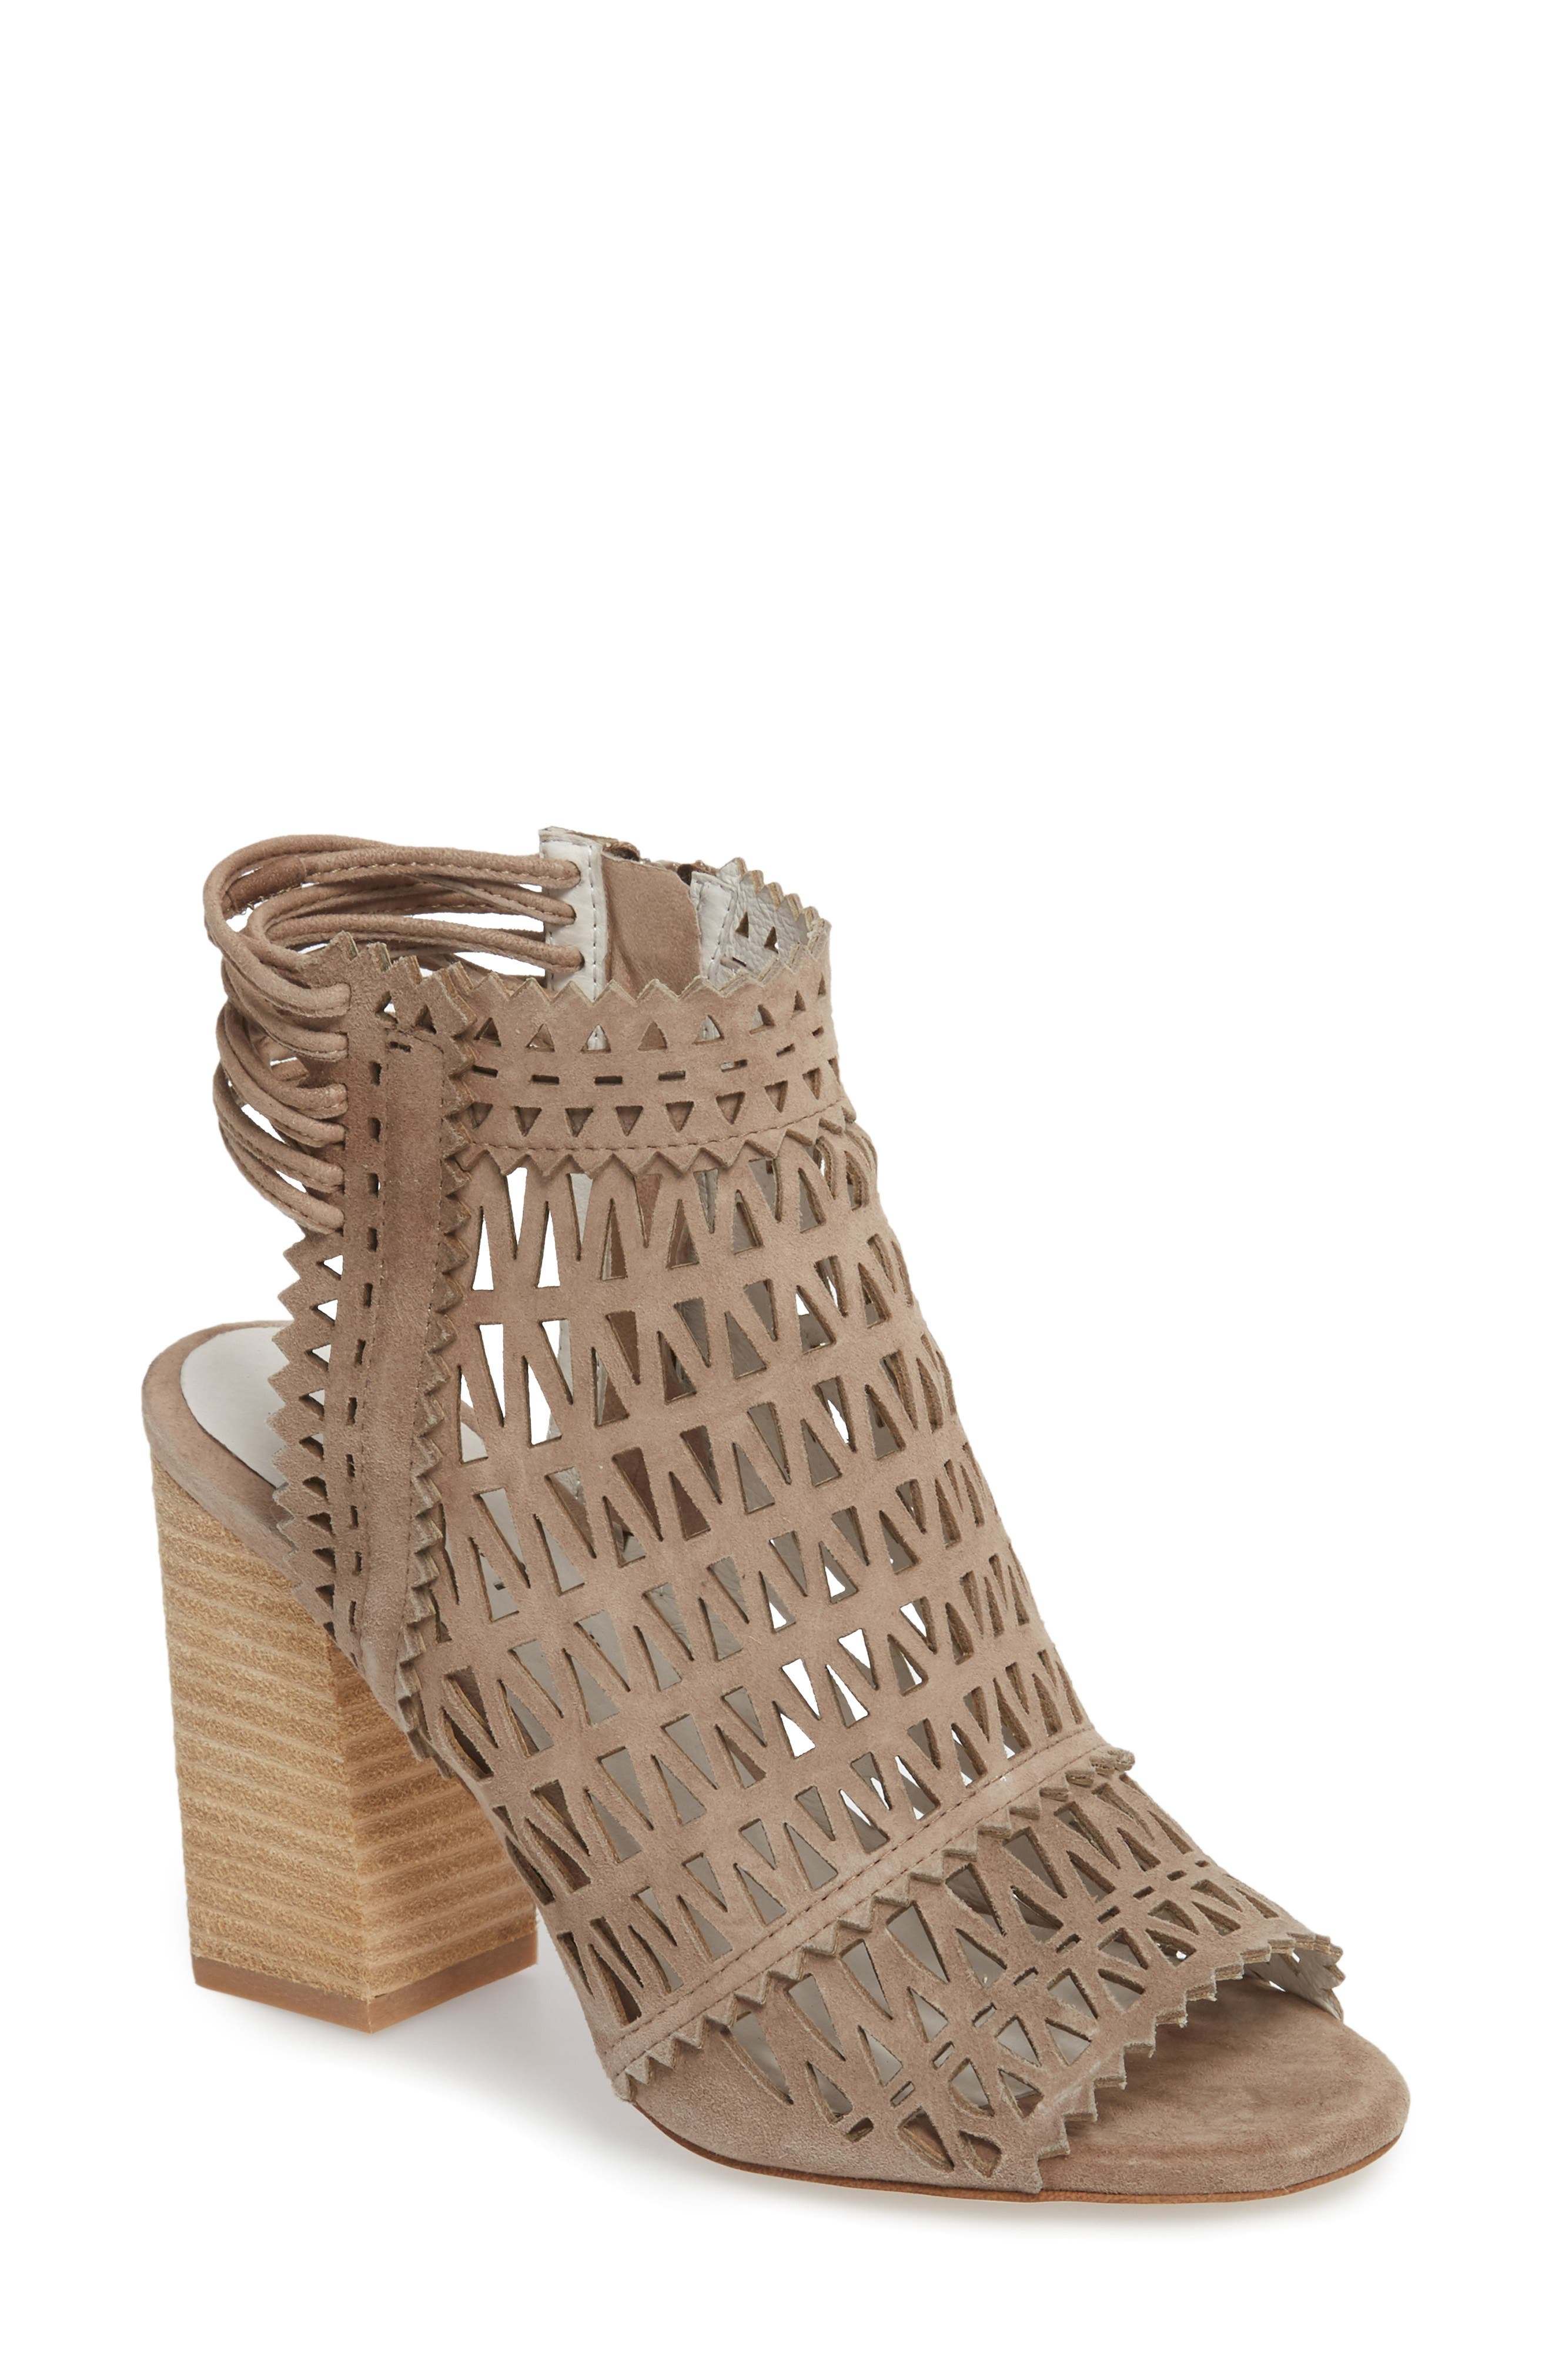 Ottawa Sandal,                             Main thumbnail 1, color,                             TAUPE SUEDE